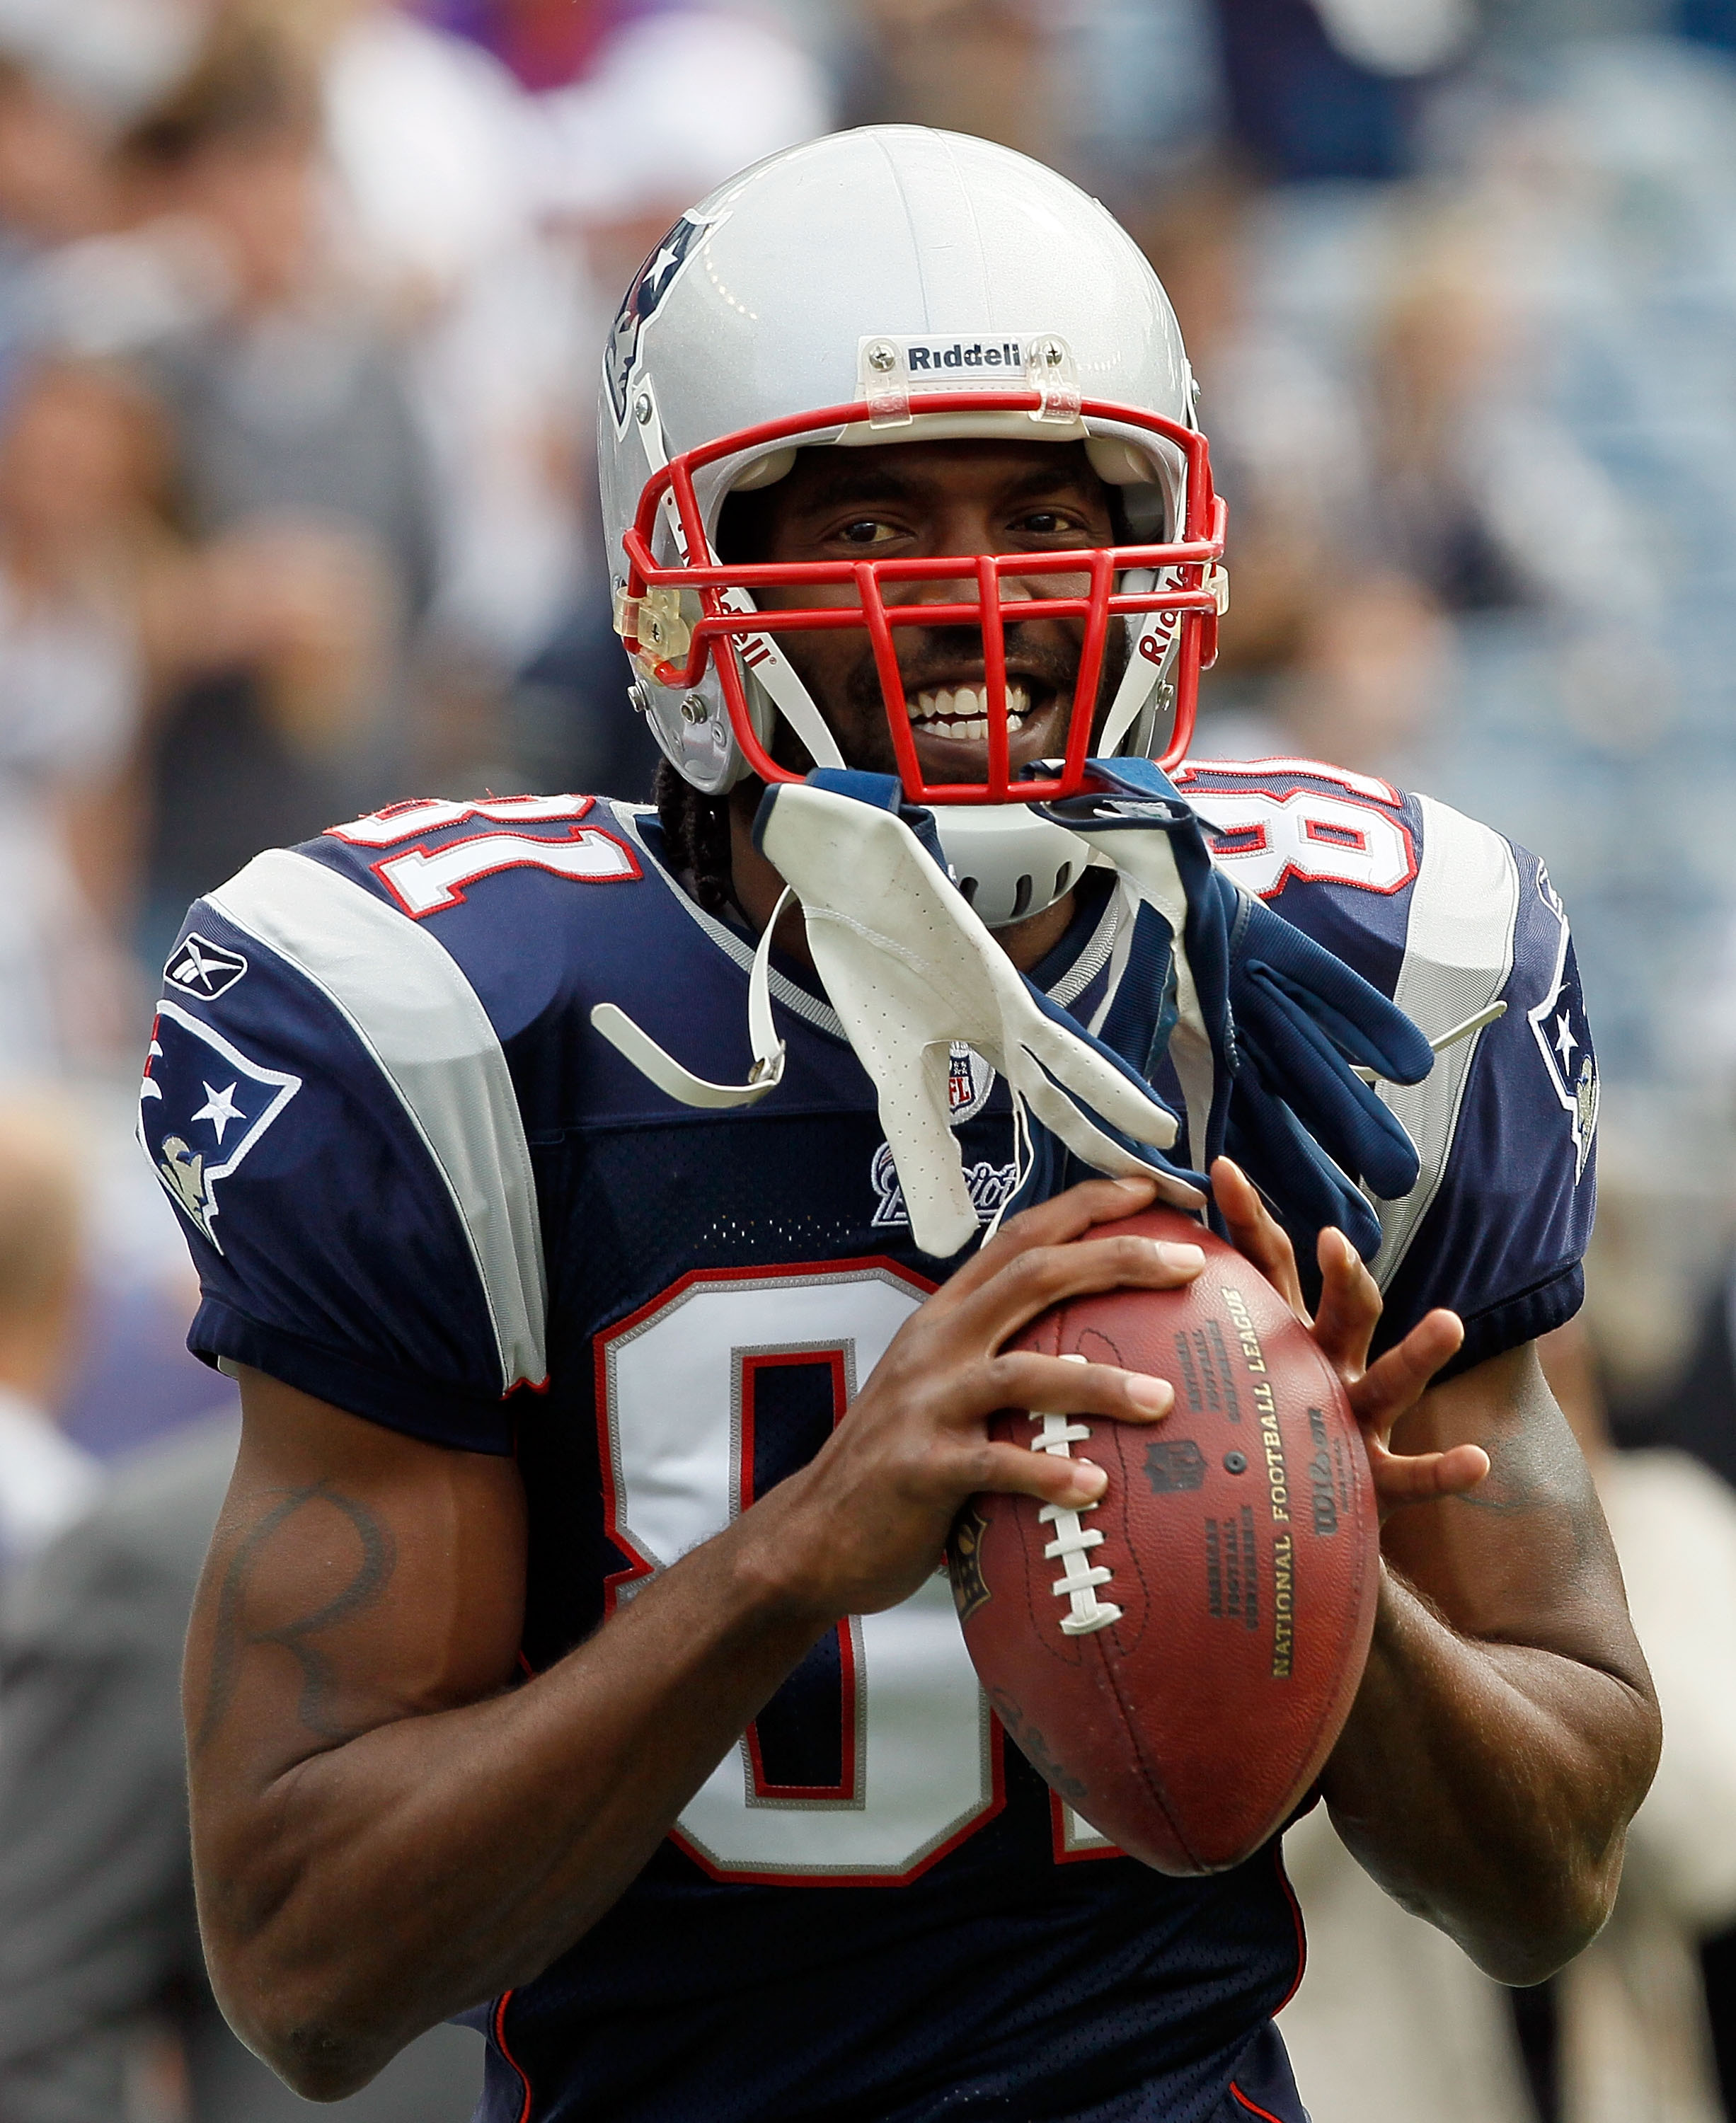 FOXBORO, MA - SEPTEMBER 26:  Randy Moss #81 of the New England Patriots participates in pregame drills before a game against the Buffalo Bills at Gillette Stadium on September 26, 2010 in Foxboro, Massachusetts. (Photo by Jim Rogash/Getty Images)